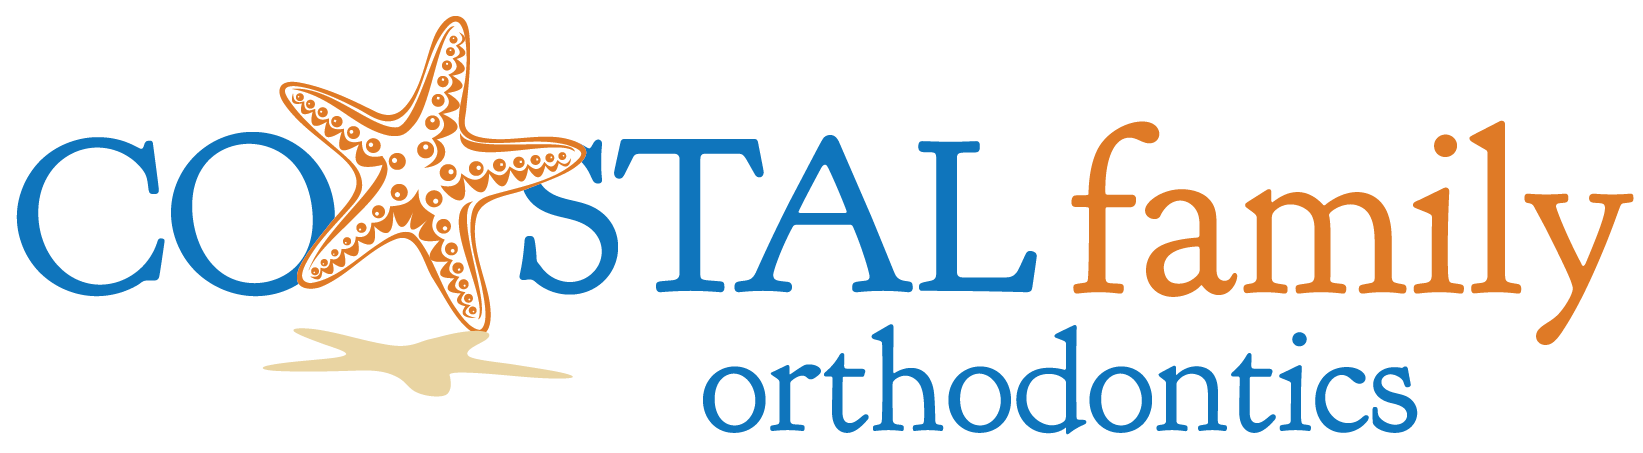 Coastal Family Orthodontics